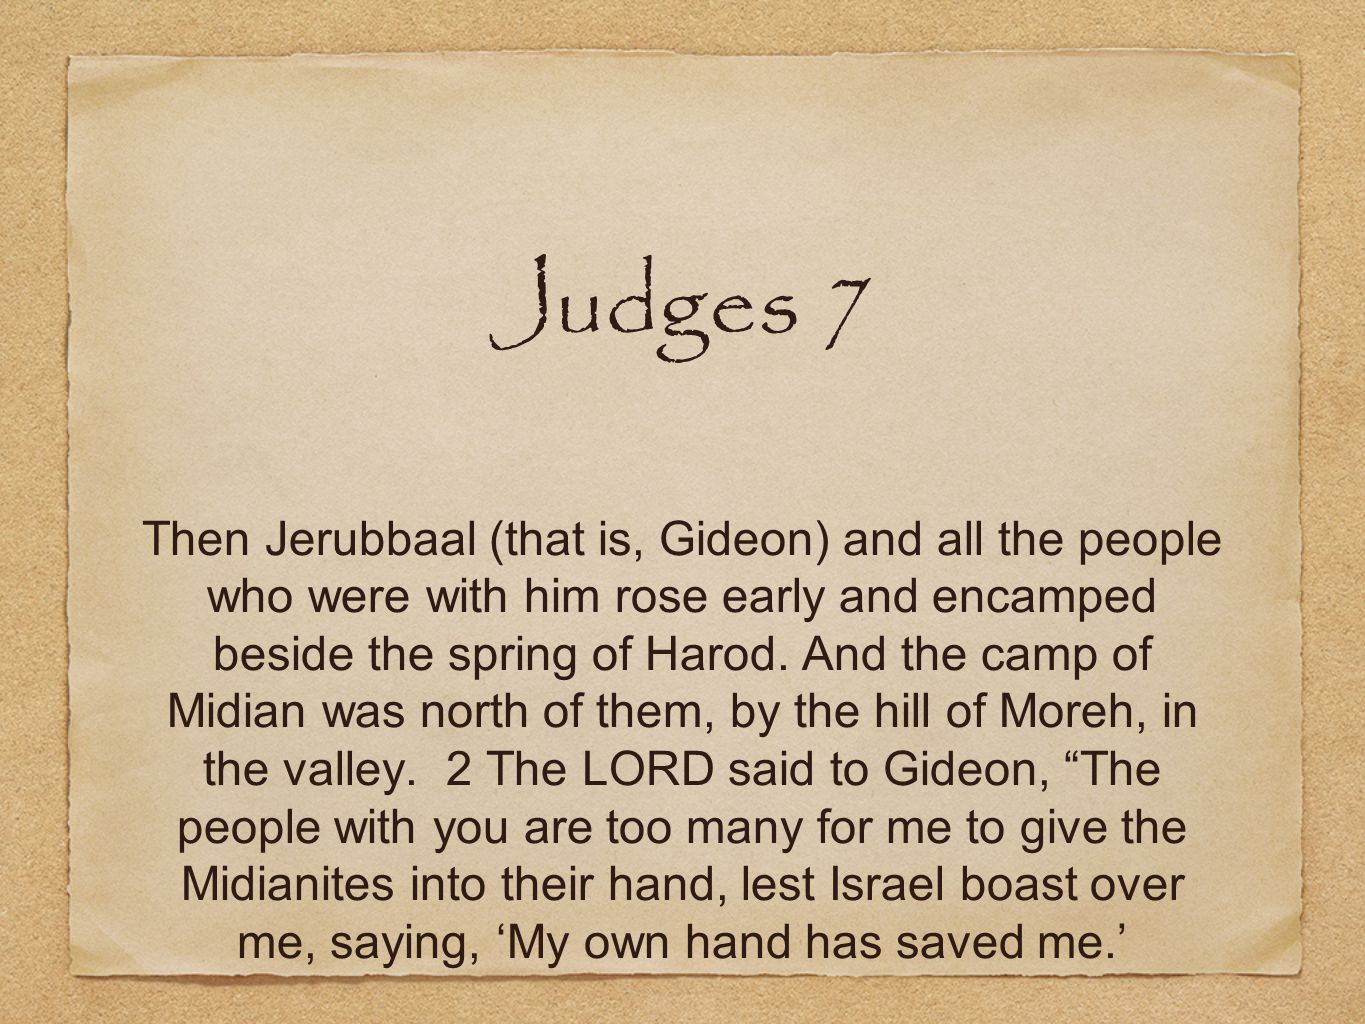 Judges 7 Then Jerubbaal (that is, Gideon) and all the people who were with him rose early and encamped beside the spring of Harod.